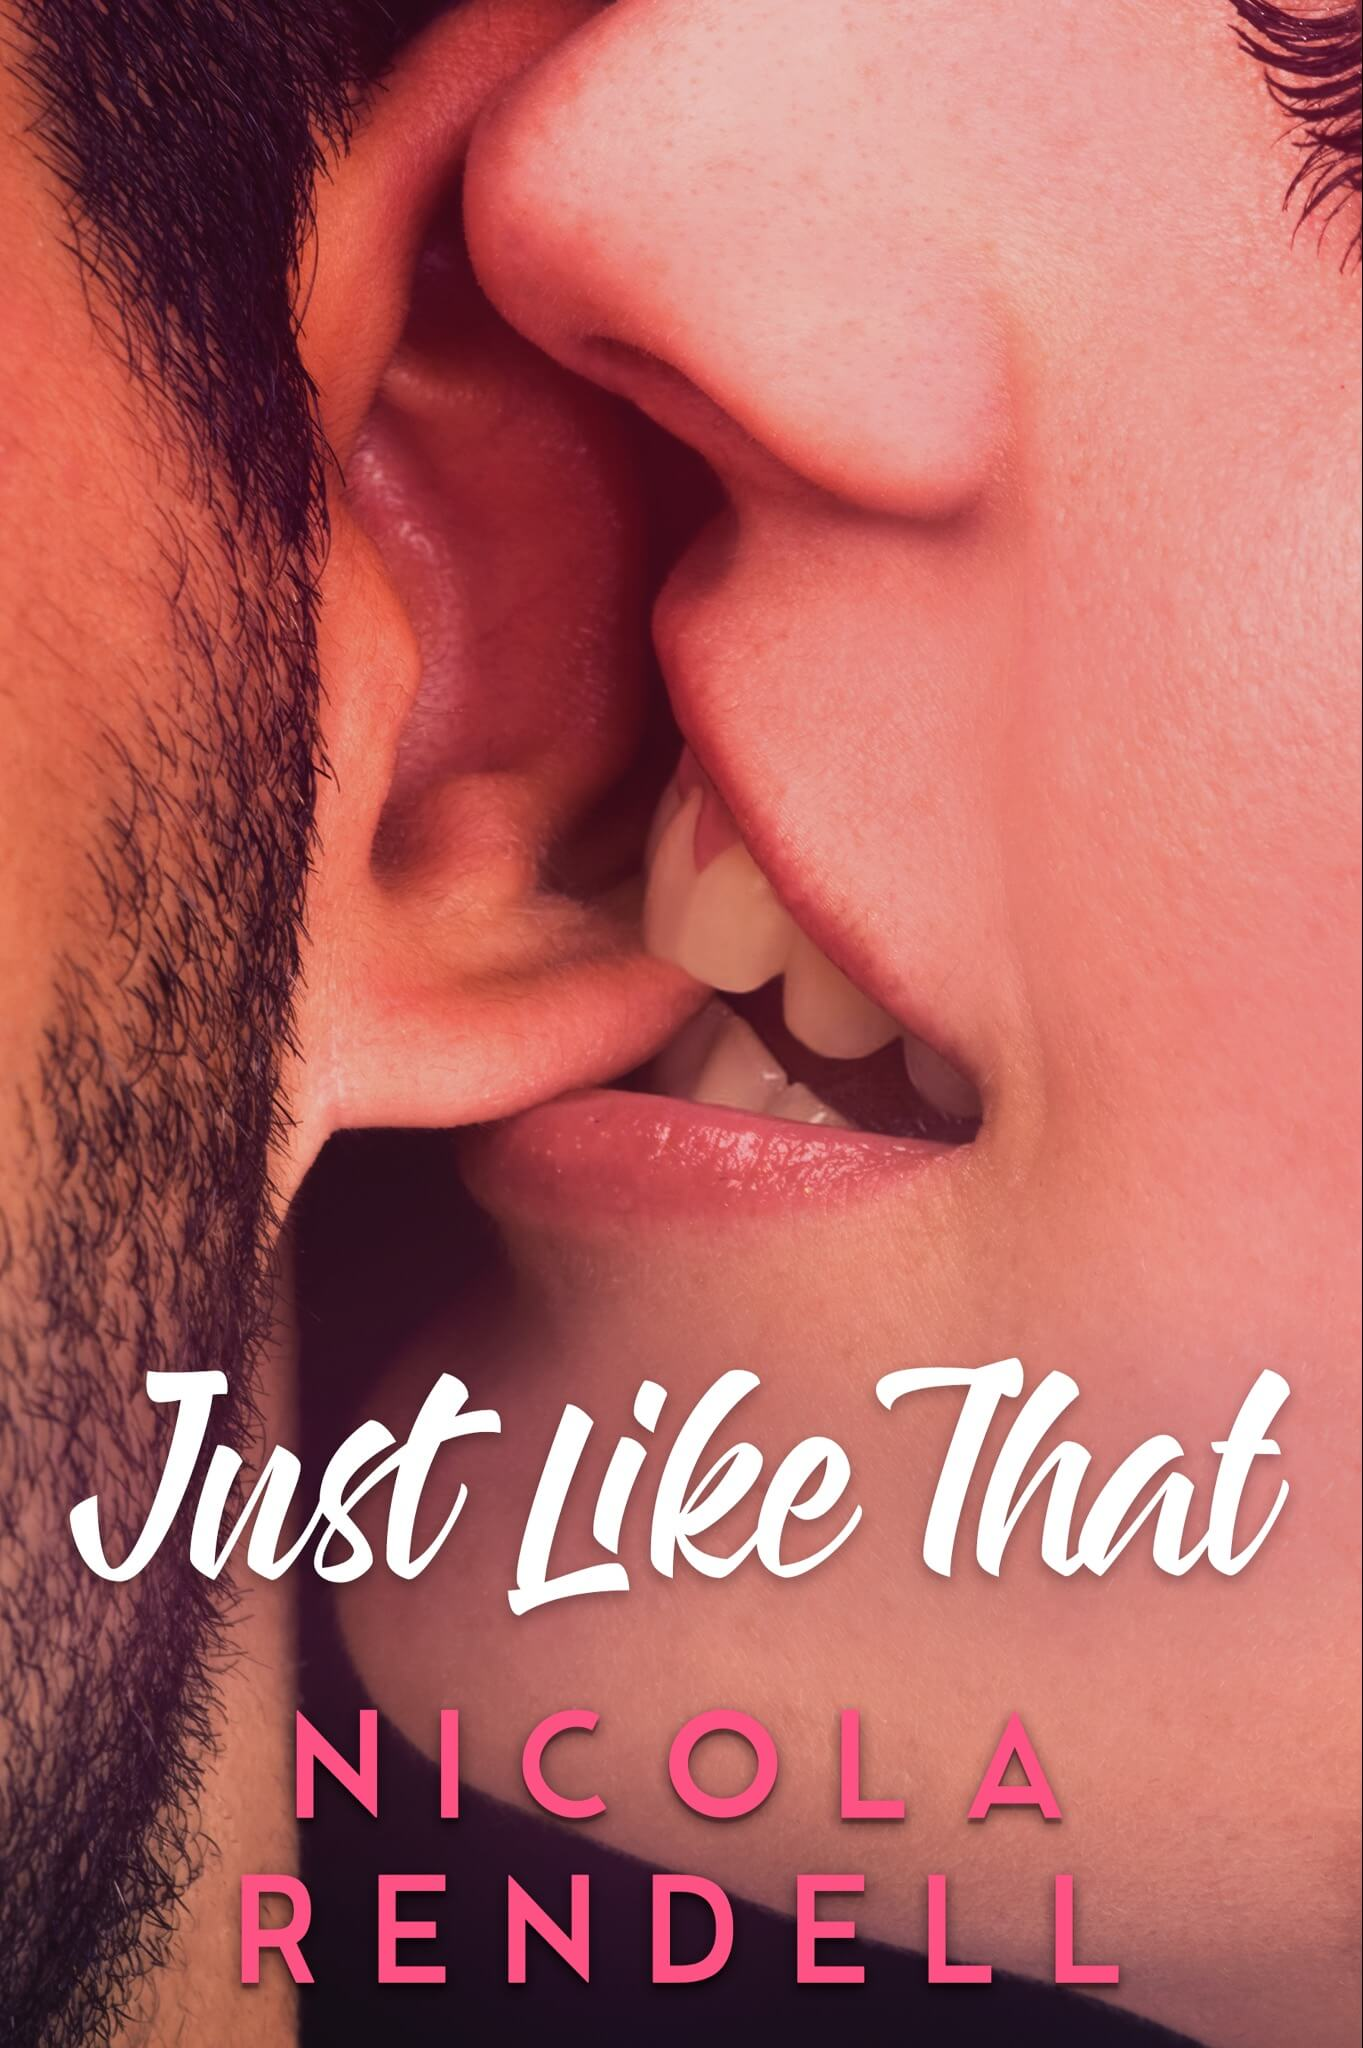 Just Like That by Nicola Rendell